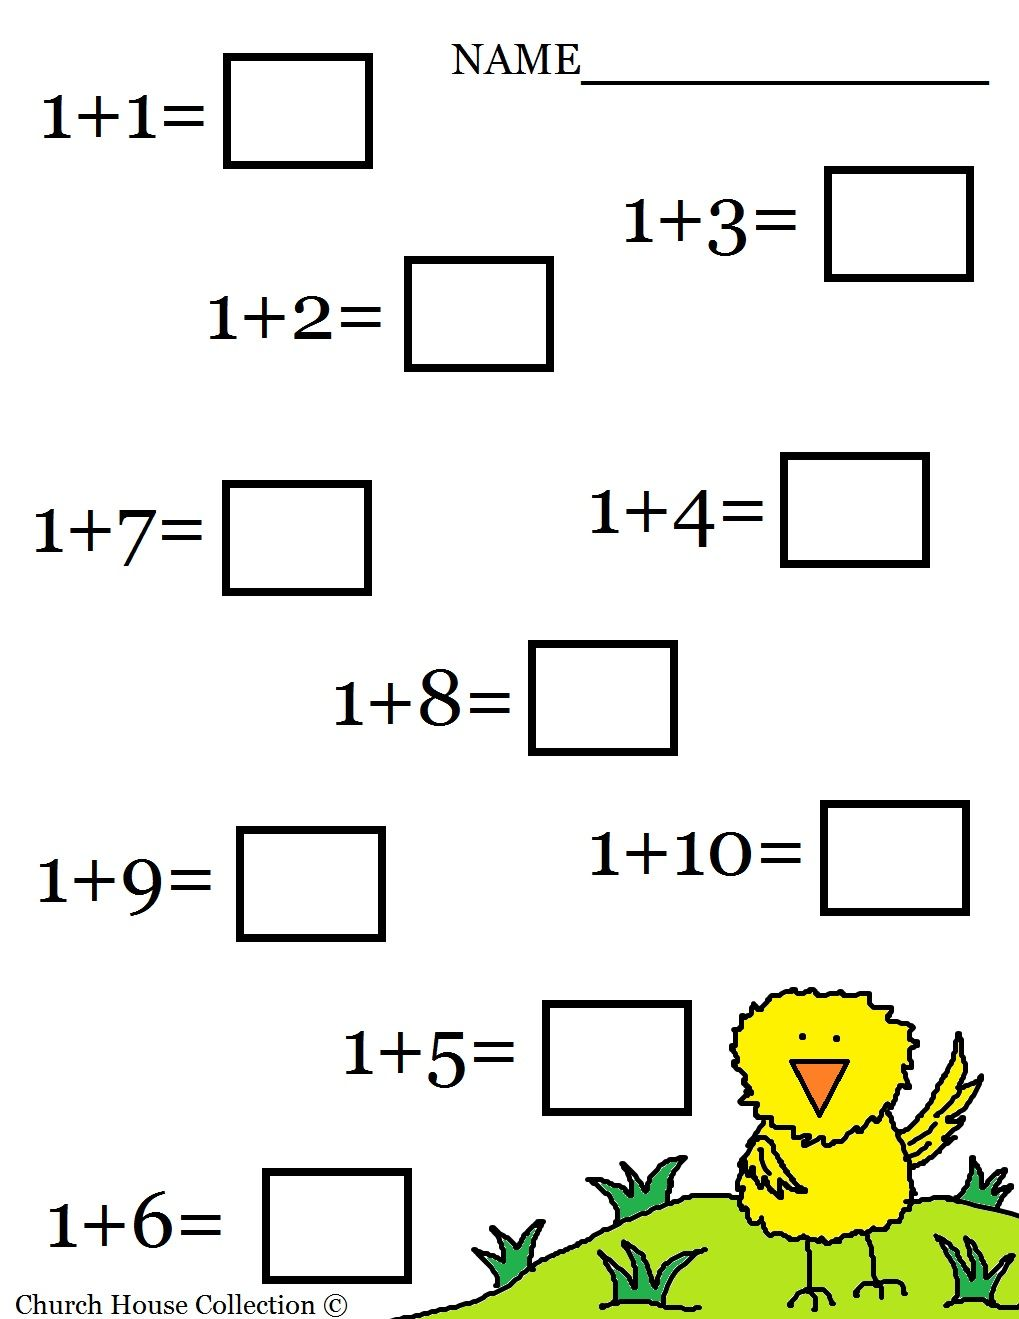 Aldiablosus  Marvelous  Images About Worksheets  Math On Pinterest  Math Sheets  With Magnificent  Images About Worksheets  Math On Pinterest  Math Sheets Math Worksheets For Kindergarten And Simple Addition With Amusing Order Of Operations Worksheets Grade  Also Negative Number Line Worksheet In Addition Comma Splicing Worksheet And Idiom Worksheets Free As Well As Worksheet Works For Kindergarten Additionally Class  Maths Worksheets From Pinterestcom With Aldiablosus  Magnificent  Images About Worksheets  Math On Pinterest  Math Sheets  With Amusing  Images About Worksheets  Math On Pinterest  Math Sheets Math Worksheets For Kindergarten And Simple Addition And Marvelous Order Of Operations Worksheets Grade  Also Negative Number Line Worksheet In Addition Comma Splicing Worksheet From Pinterestcom